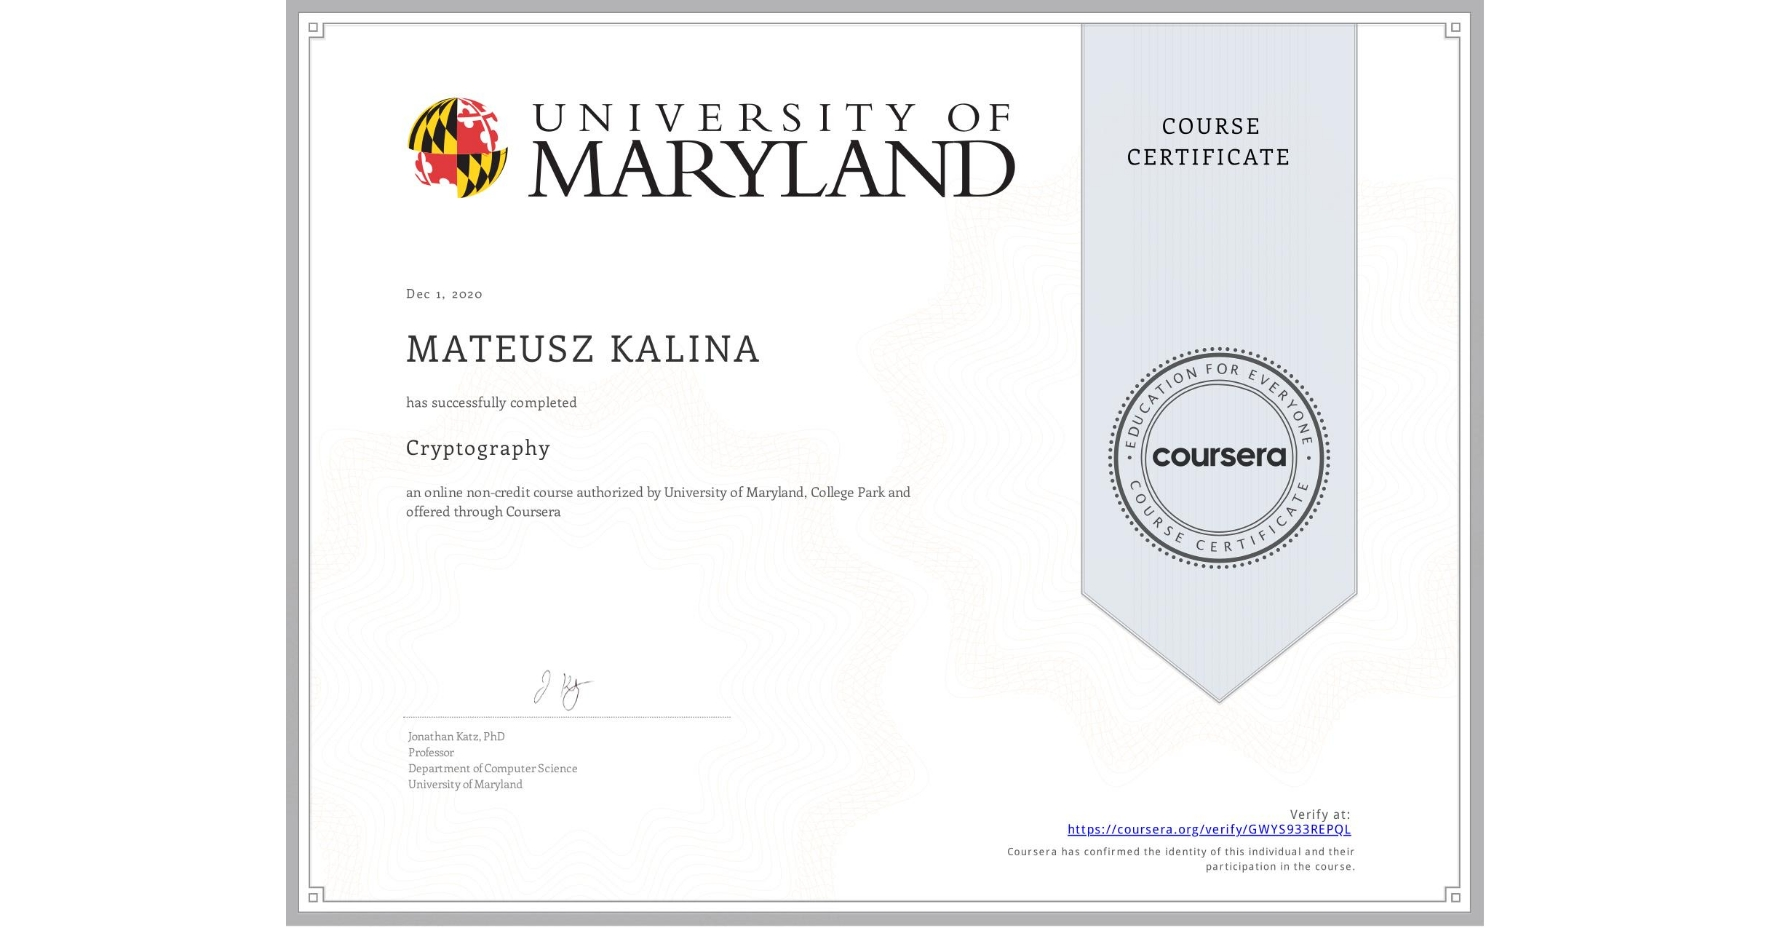 View certificate for MATEUSZ KALINA, Cryptography, an online non-credit course authorized by University of Maryland, College Park and offered through Coursera